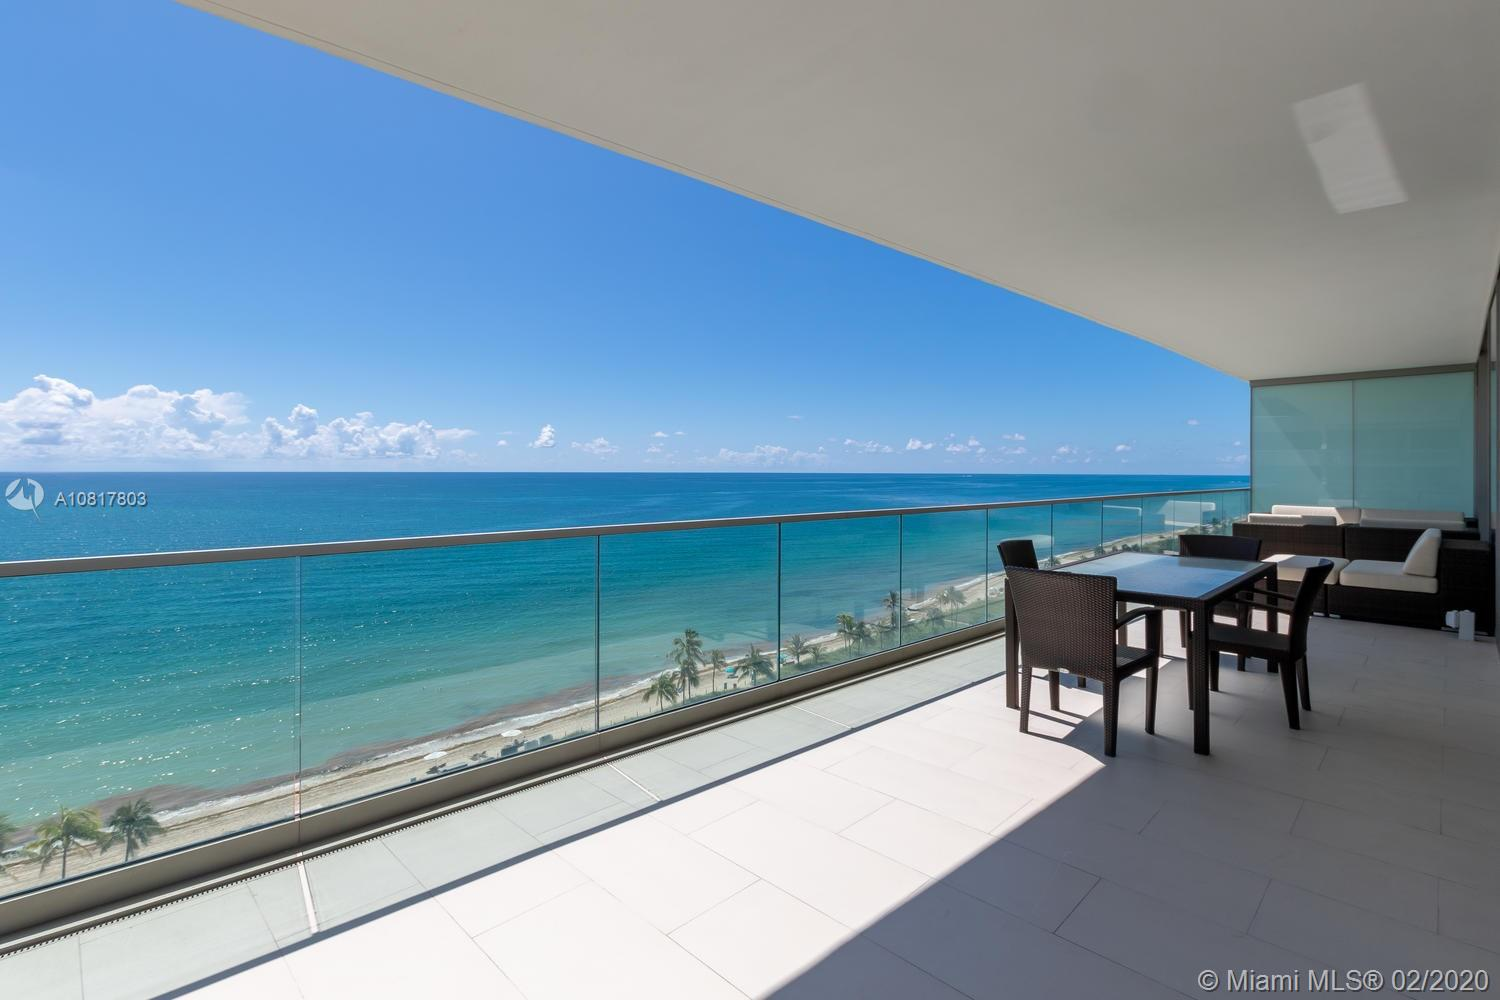 10203 Collins Ave #1201 Property Photo - Bal Harbour, FL real estate listing